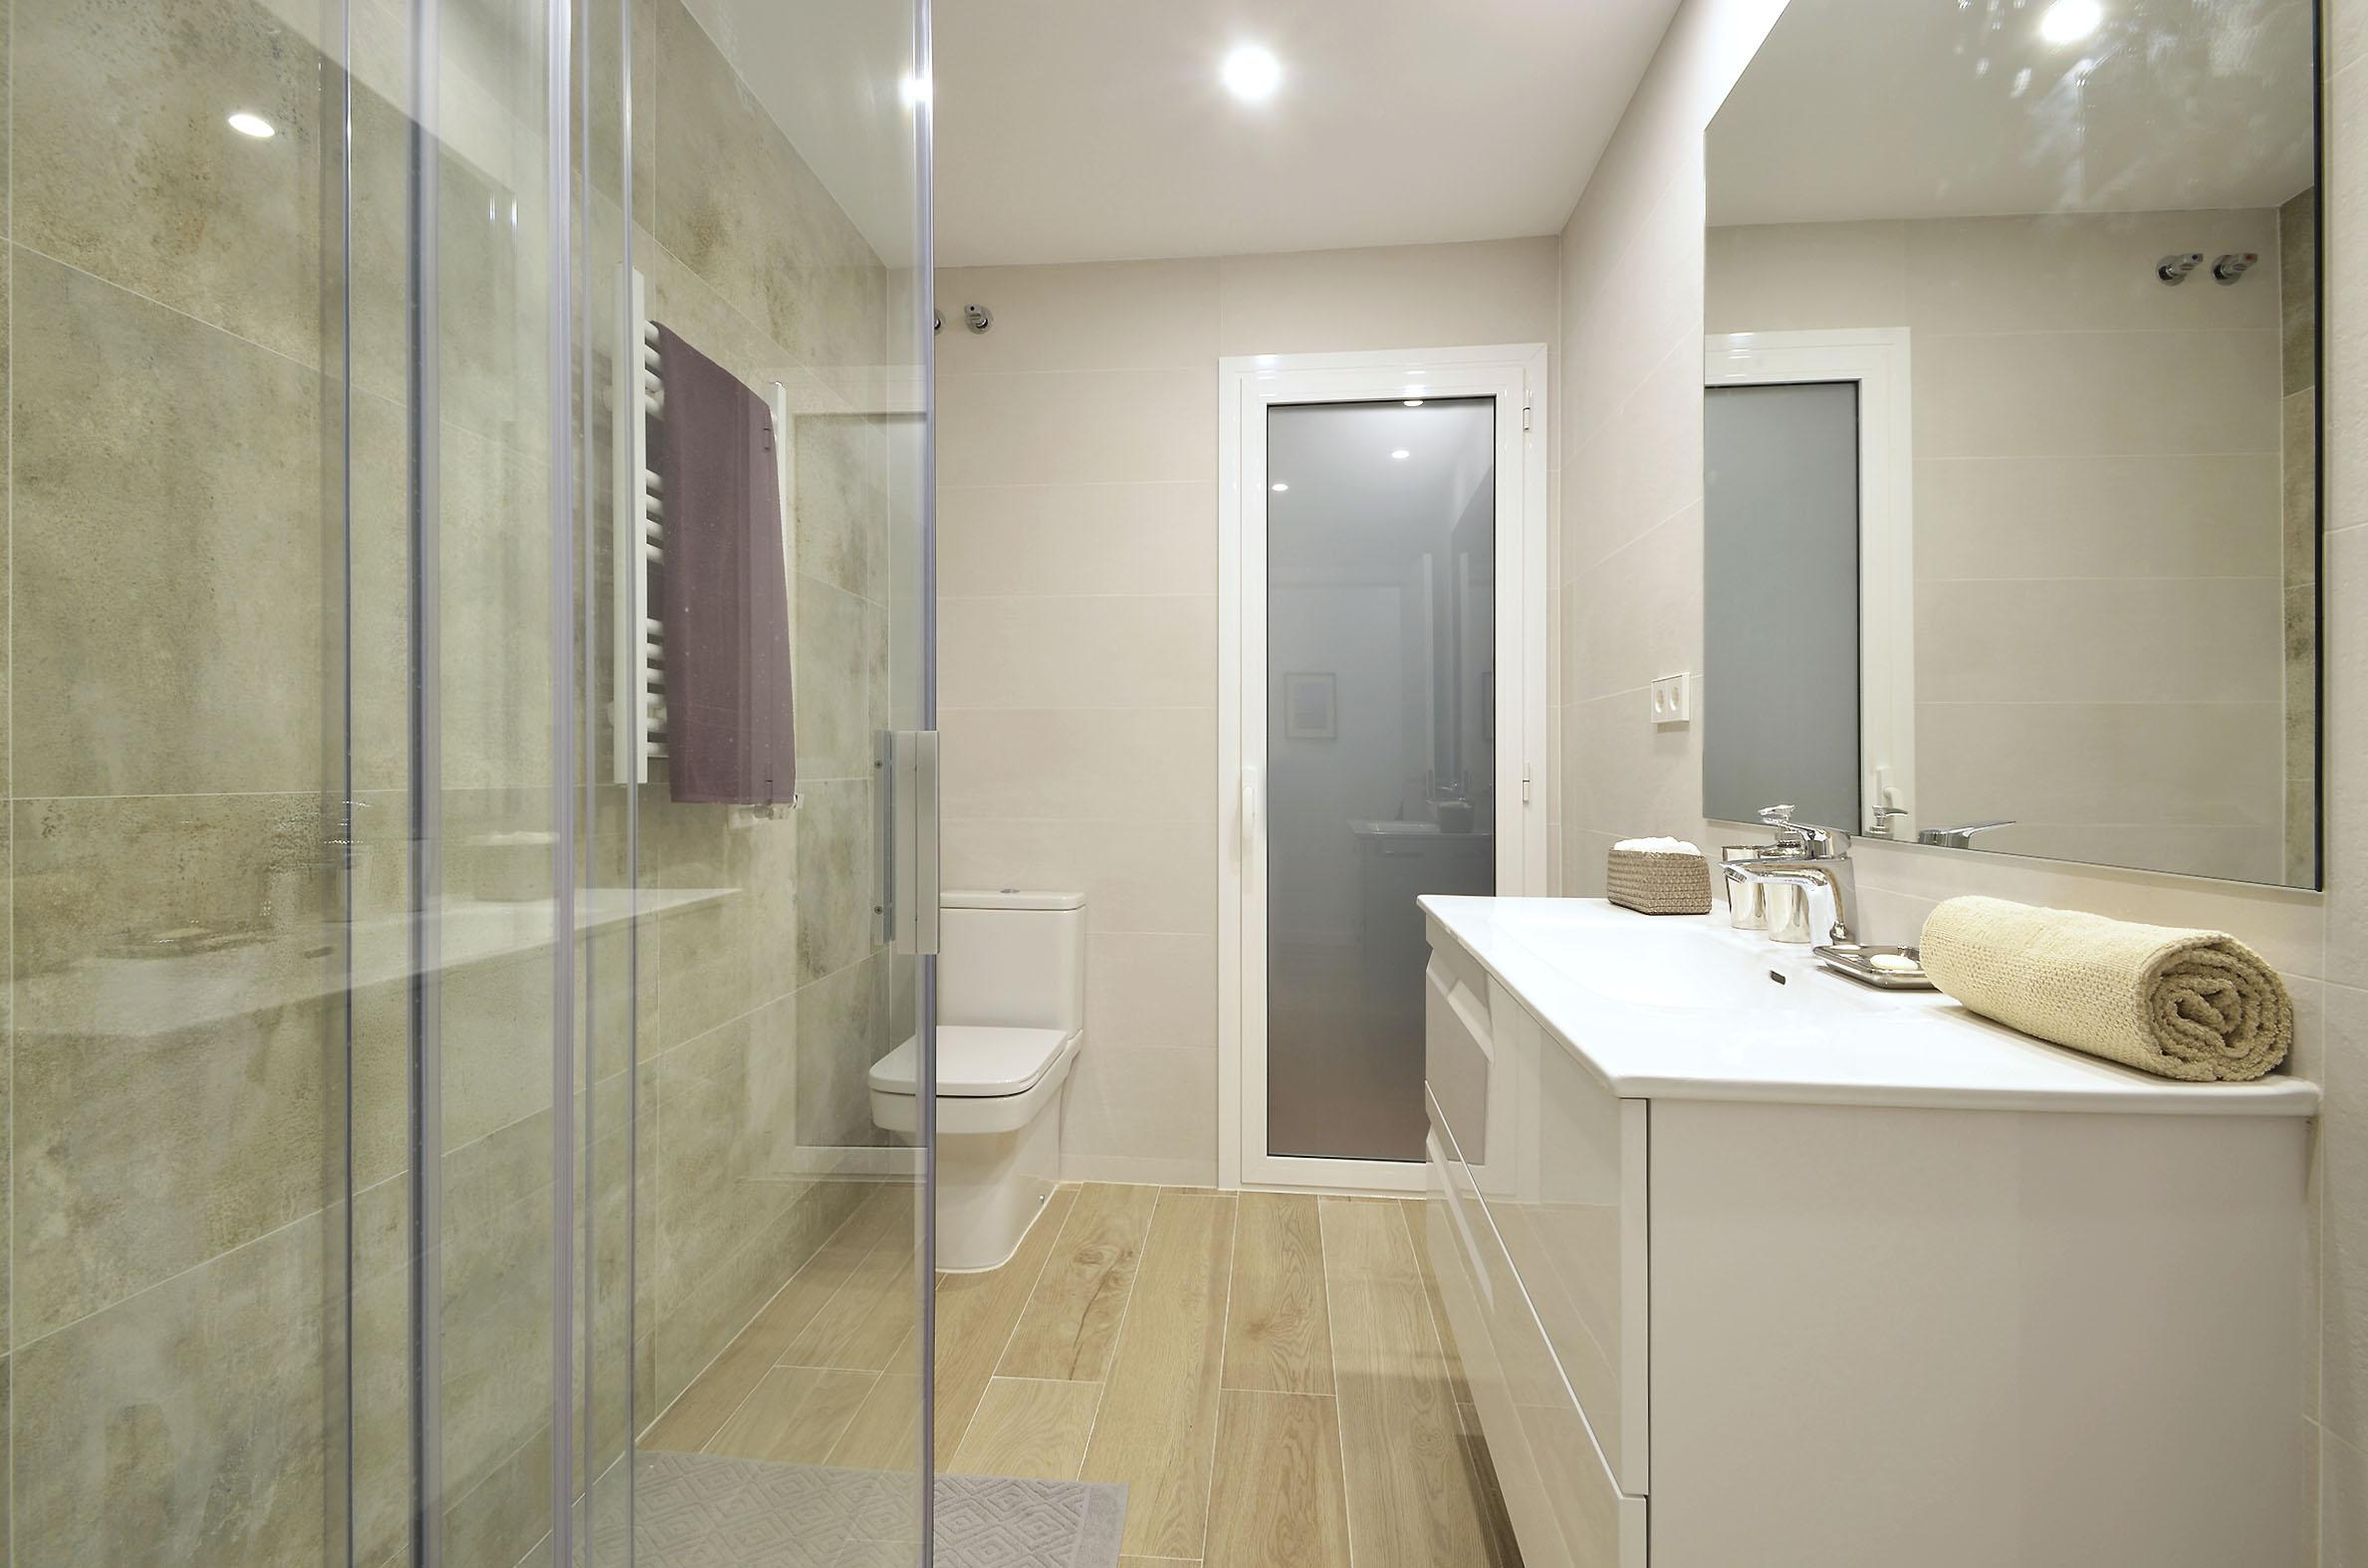 245687 Flat for sale in Eixample, Fort Pienc 16